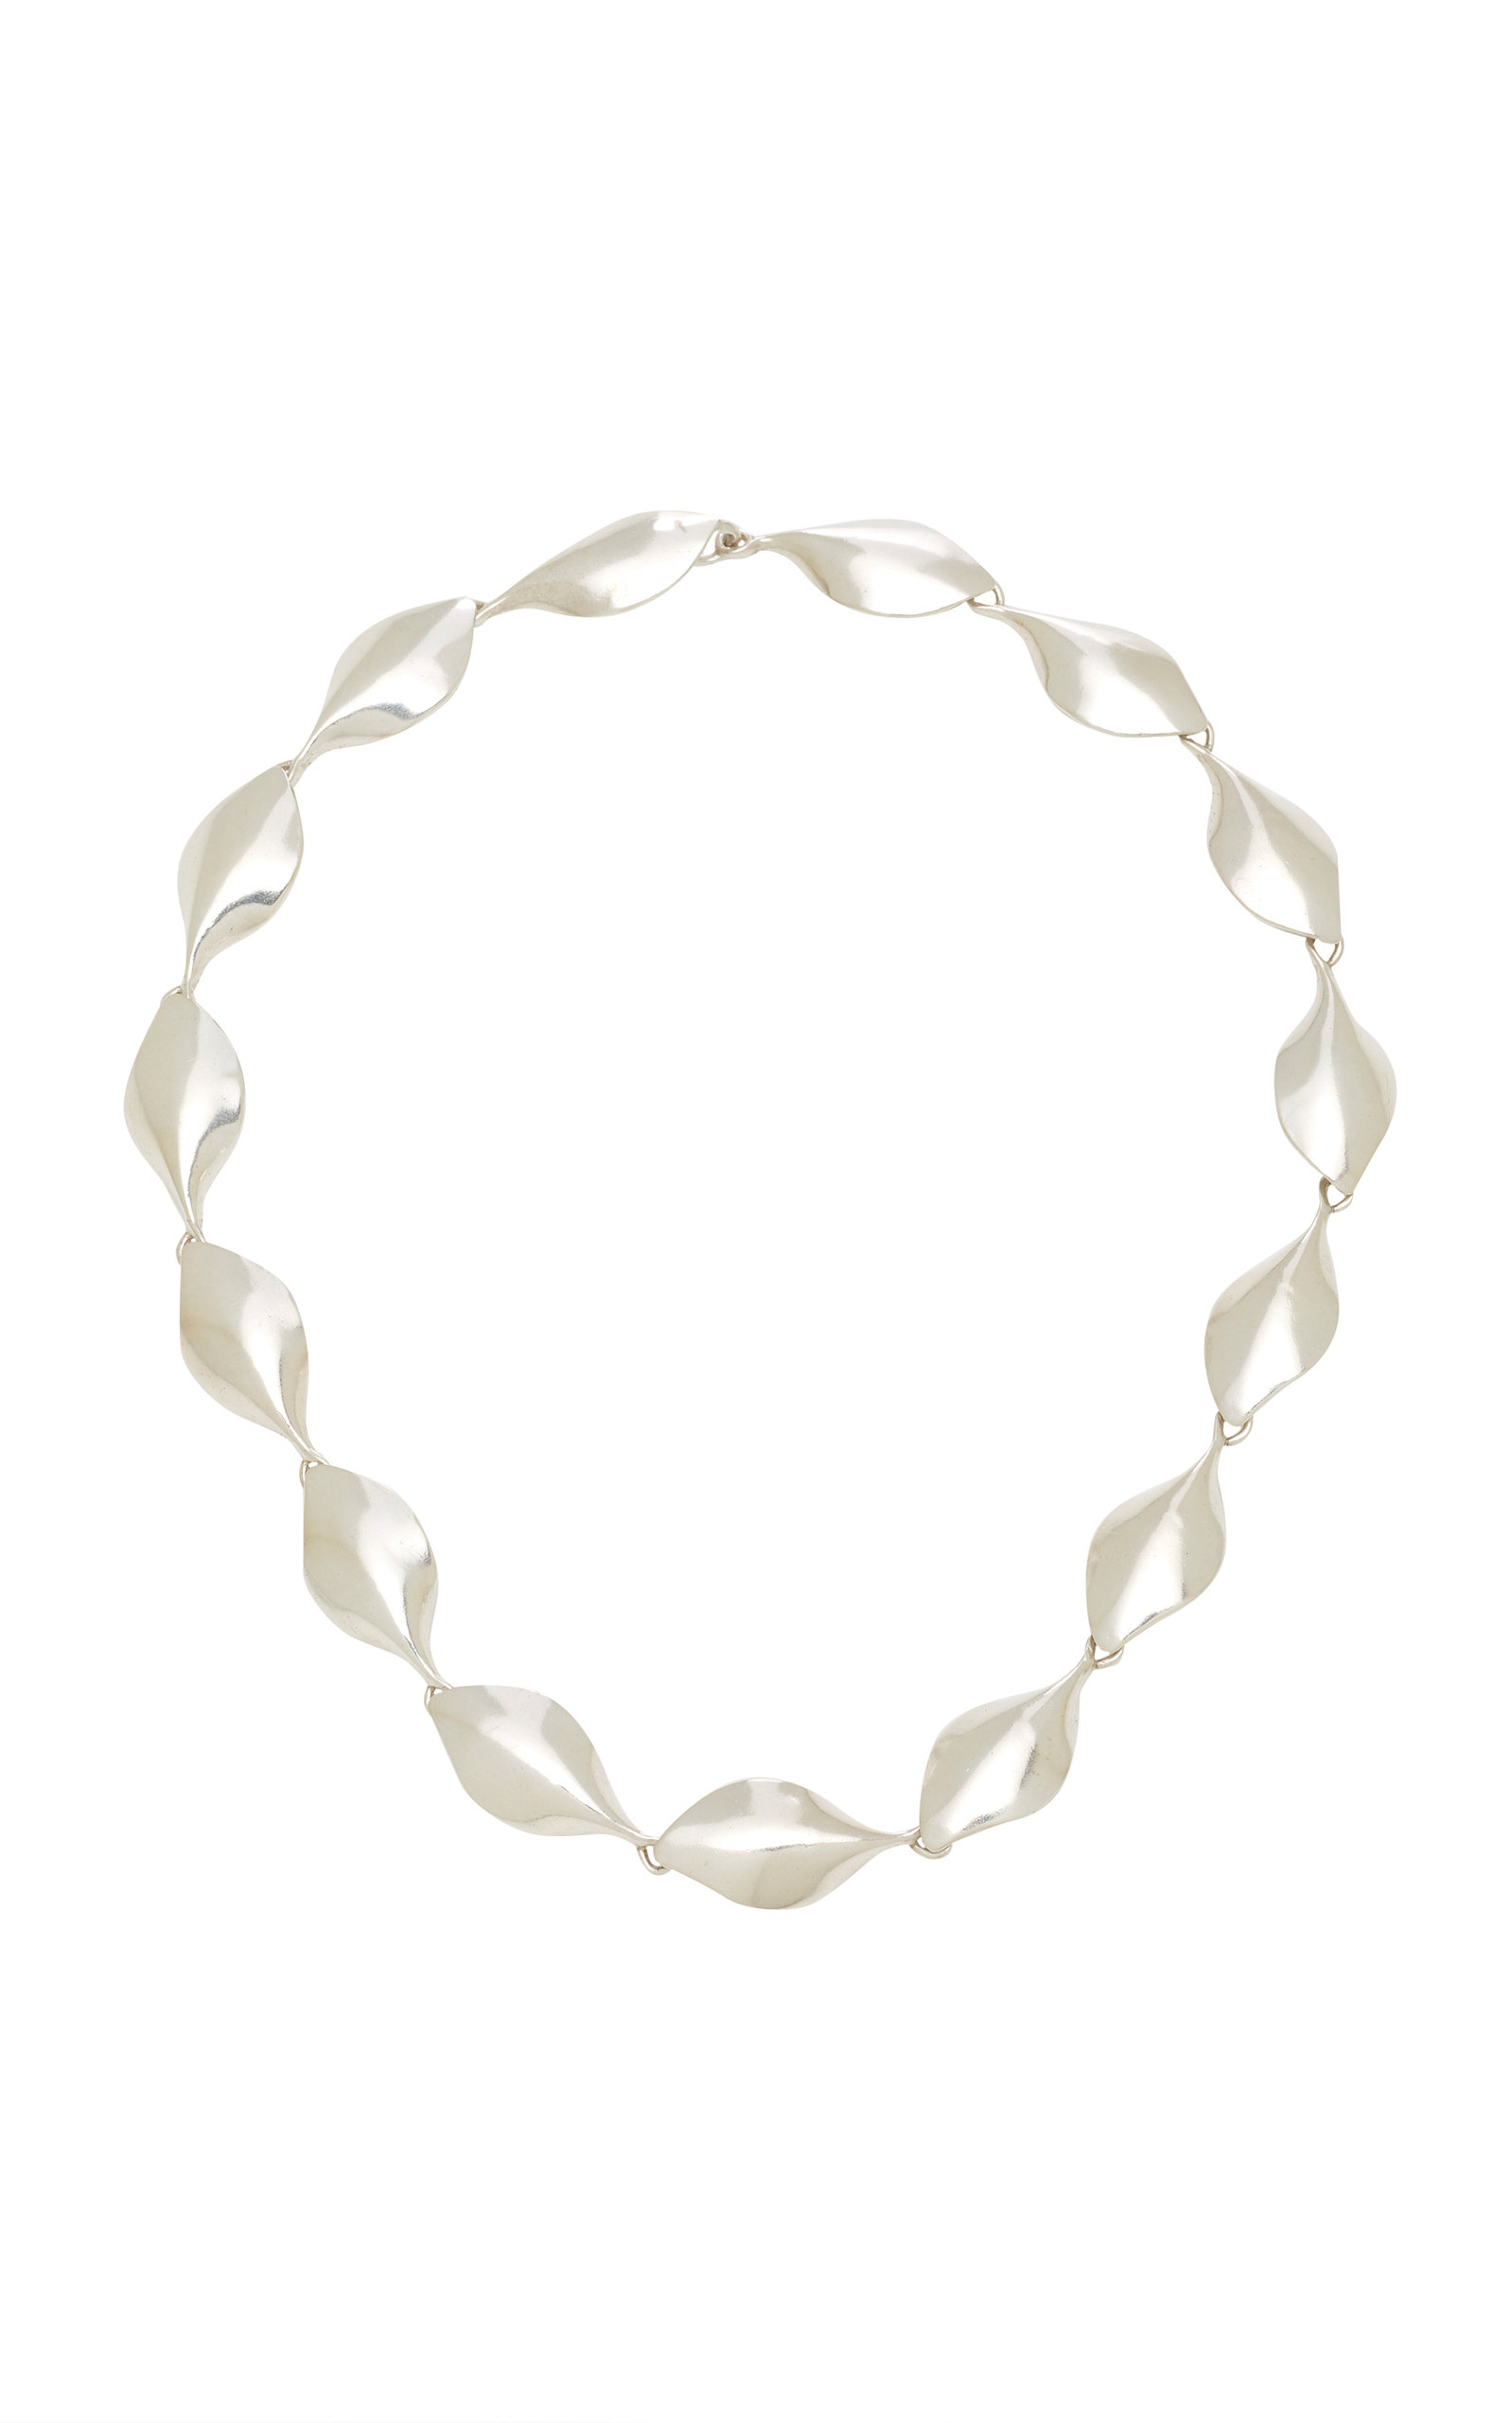 Ariana Boussard-Reifel | Ariana Boussard-Reifel Milica Sterling Silver Necklace | Clouty